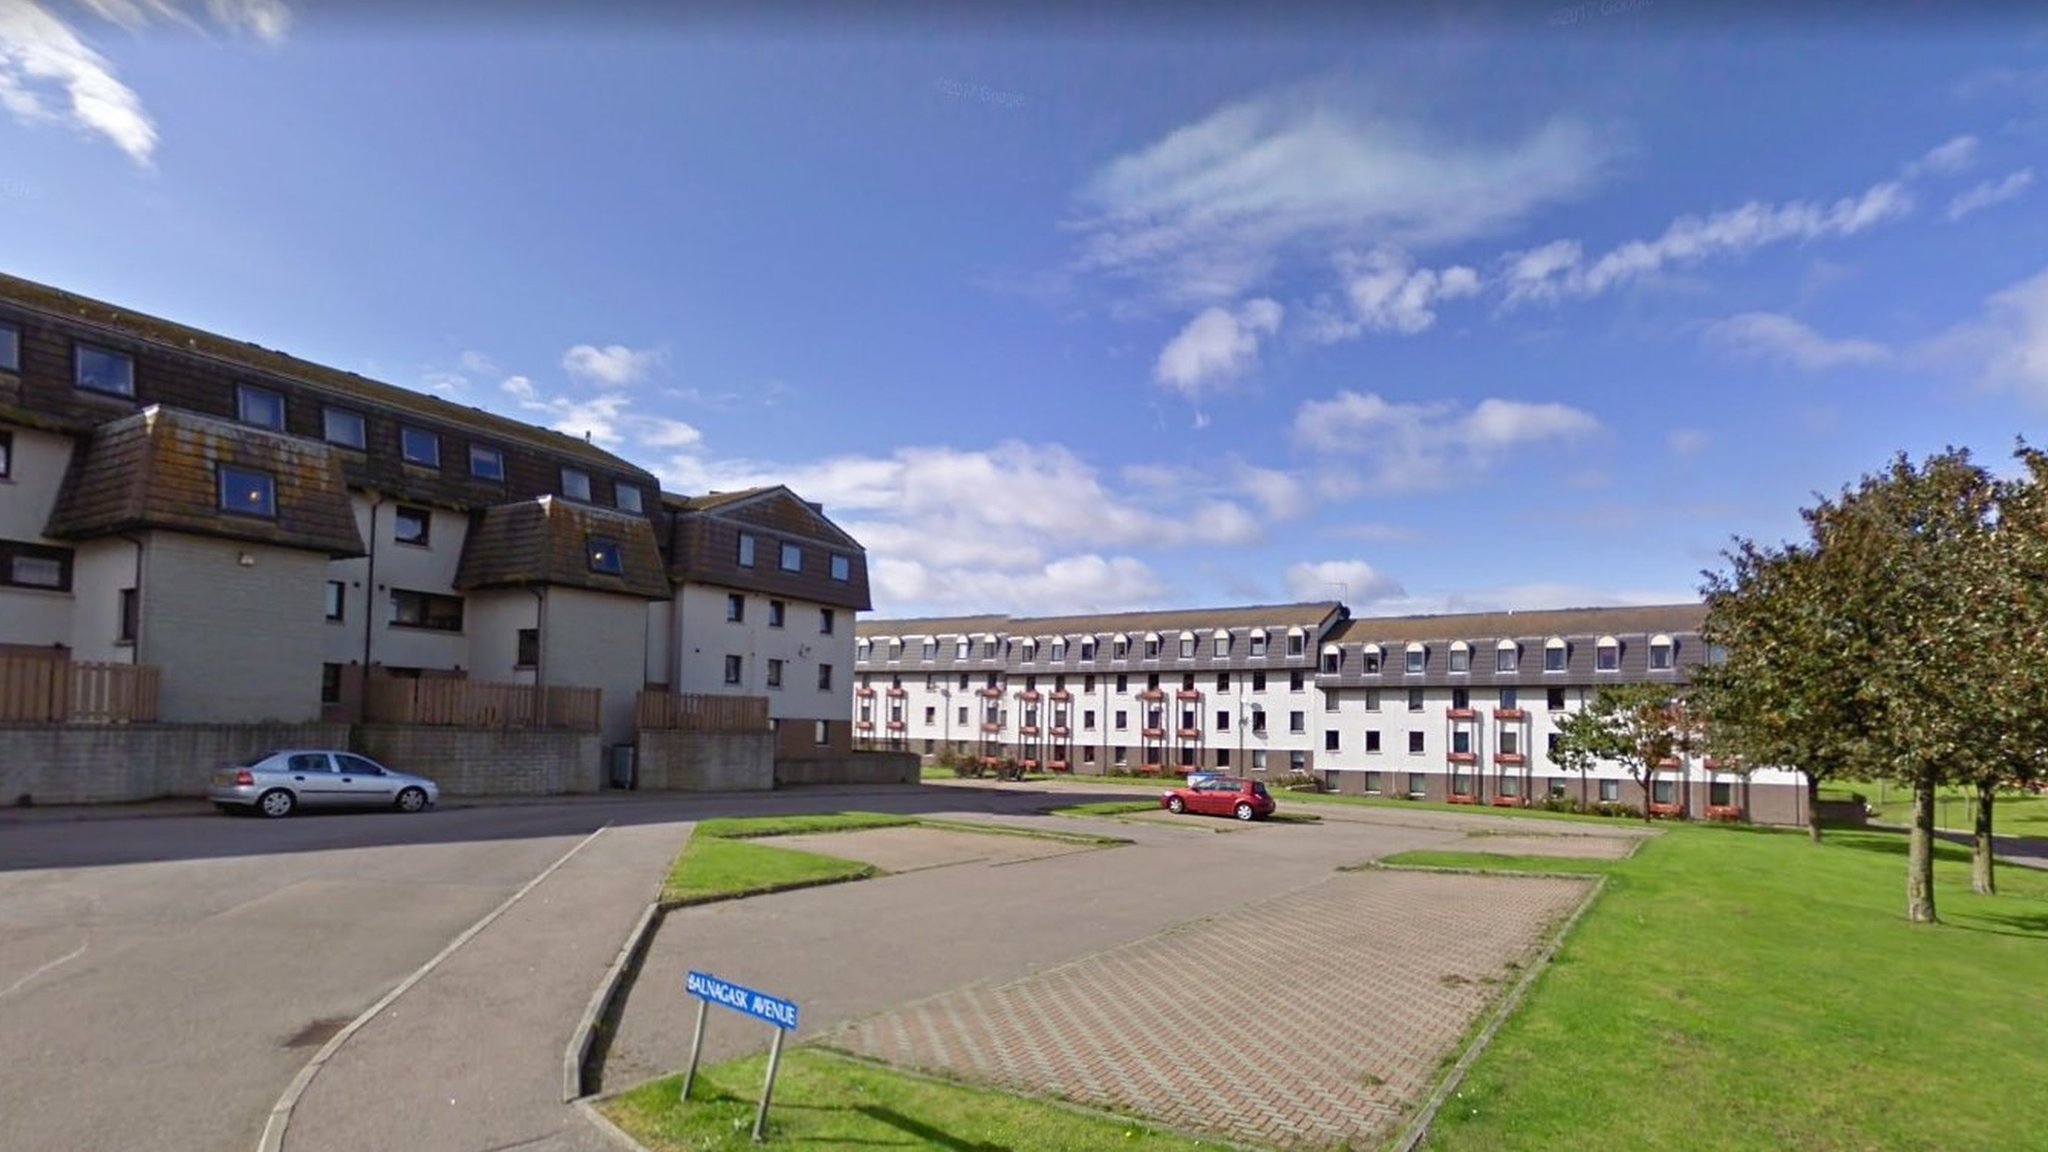 Truth or Not? Man may have been dead in Aberdeen flat 'for weeks'